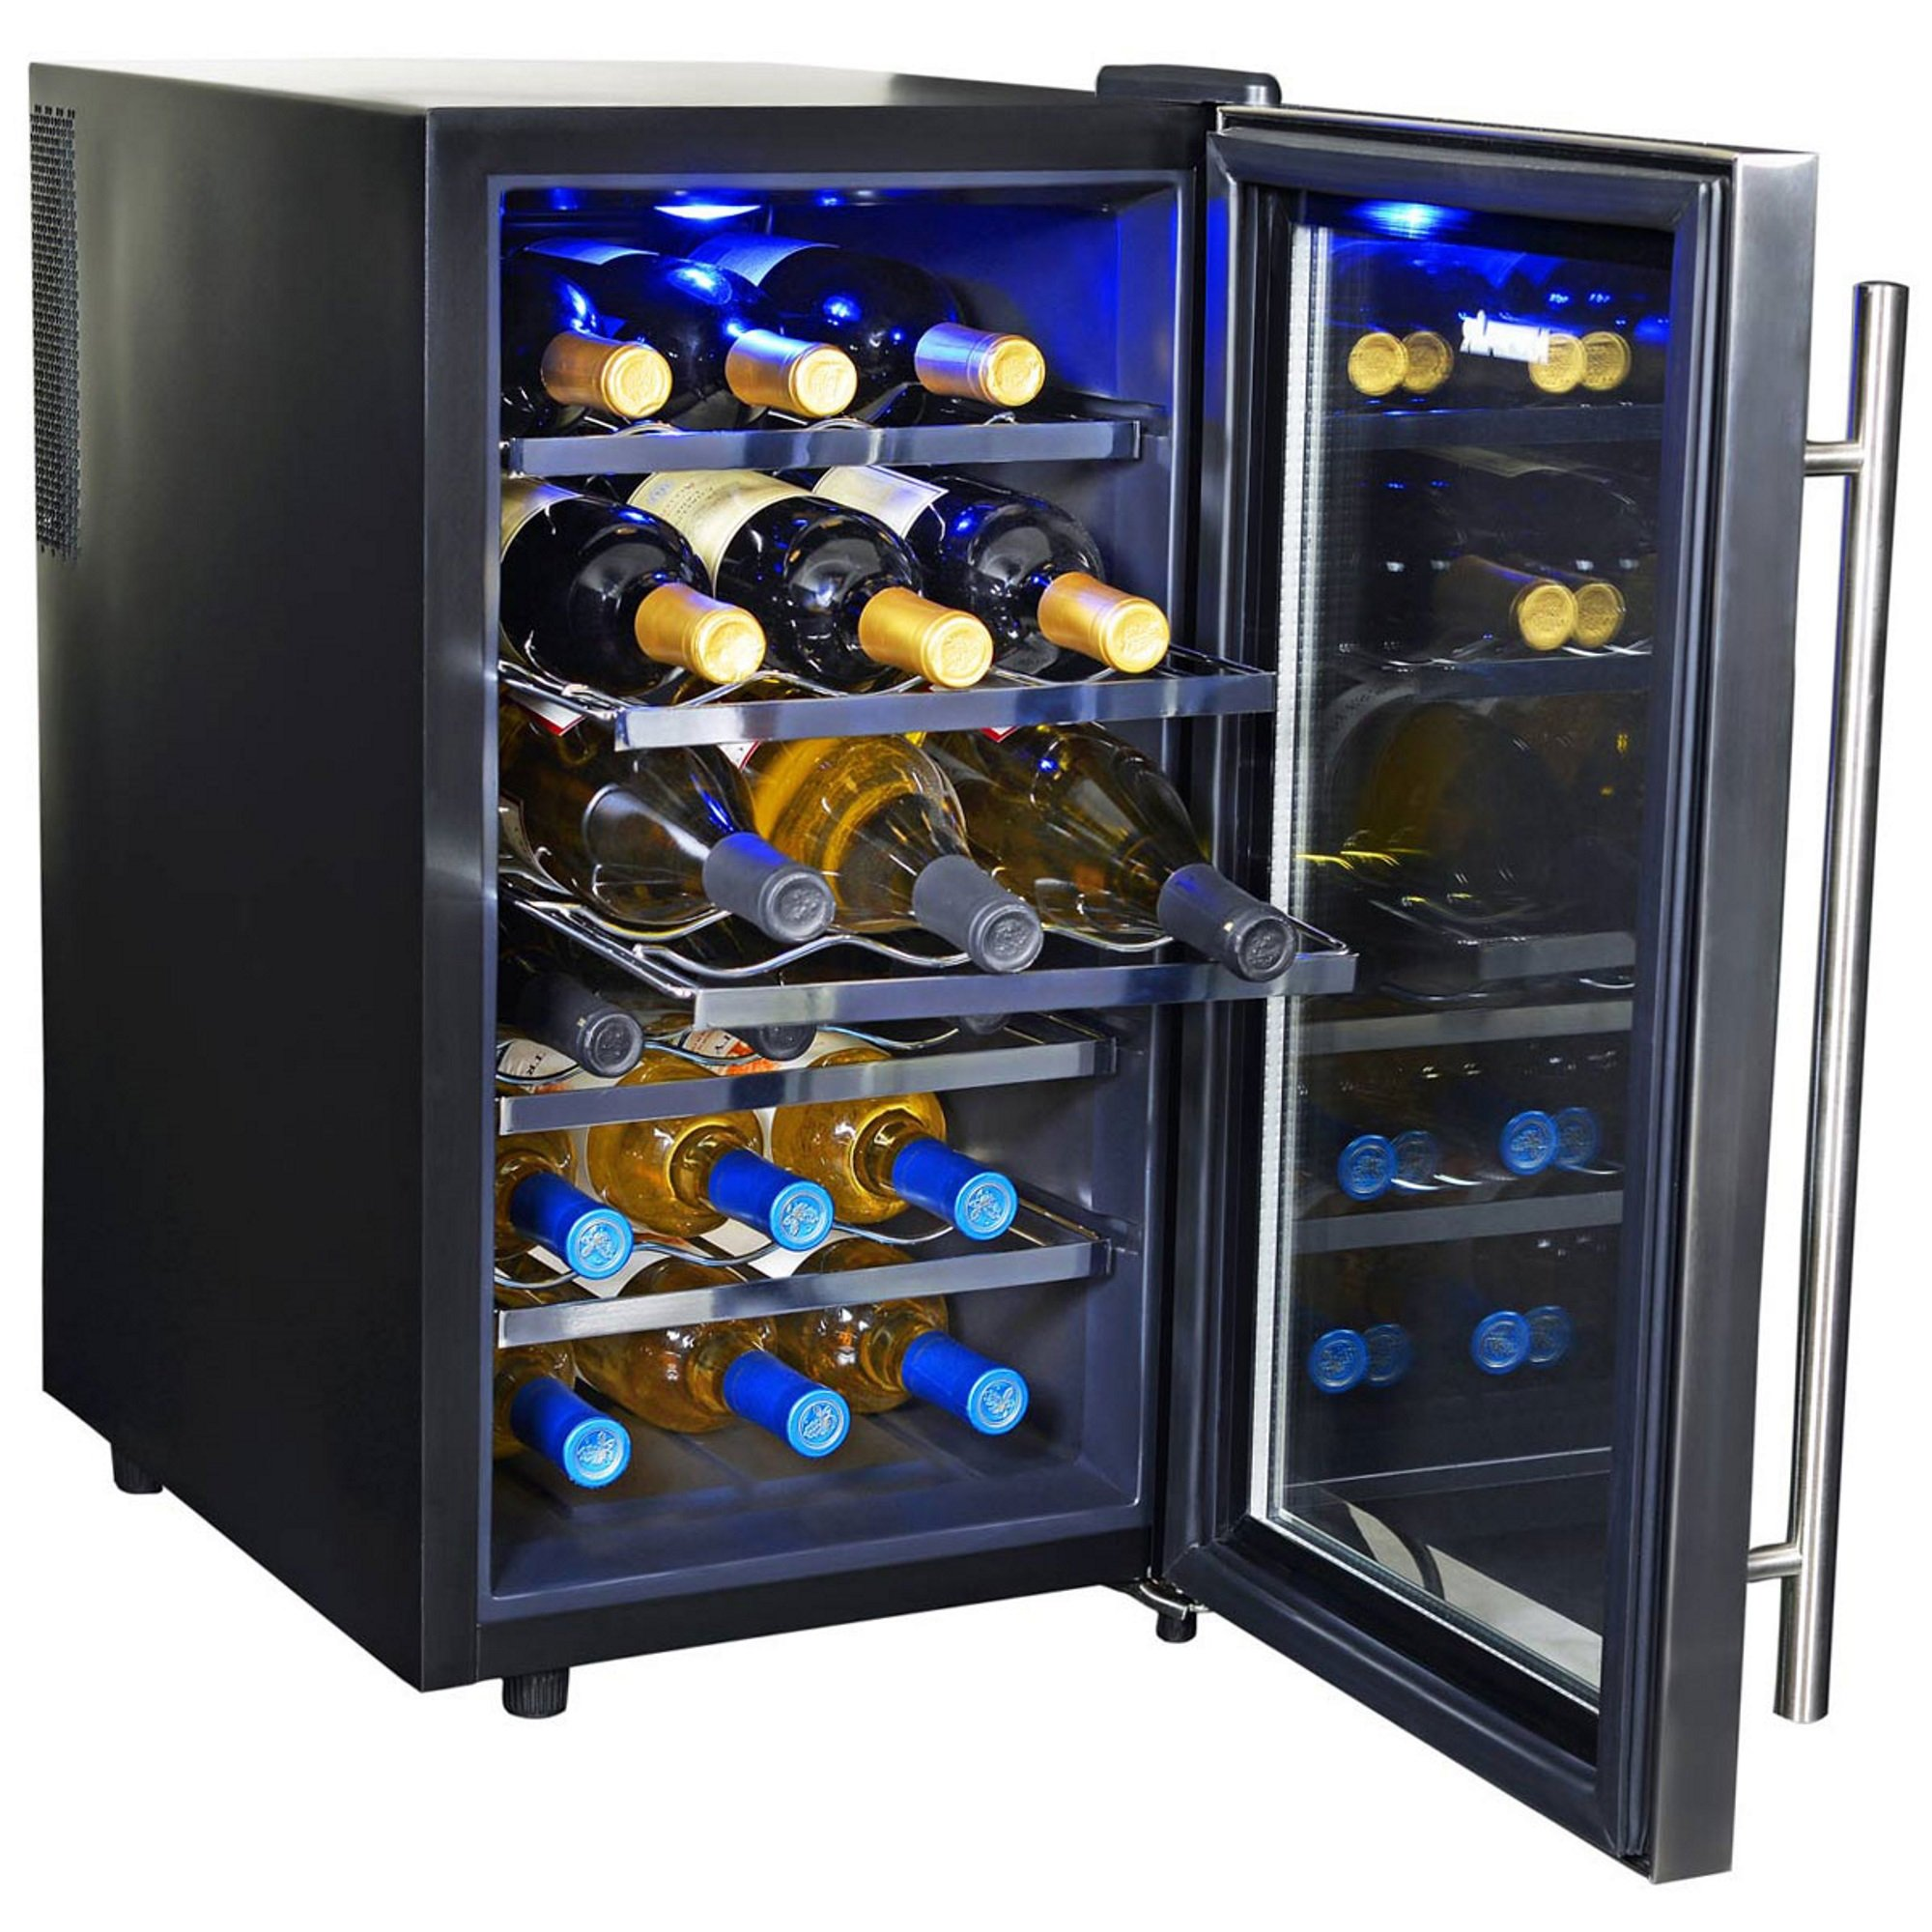 NewAir AW-181E 18 Bottle Thermoelectric Wine Cooler, Black by NewAir (Image #9)